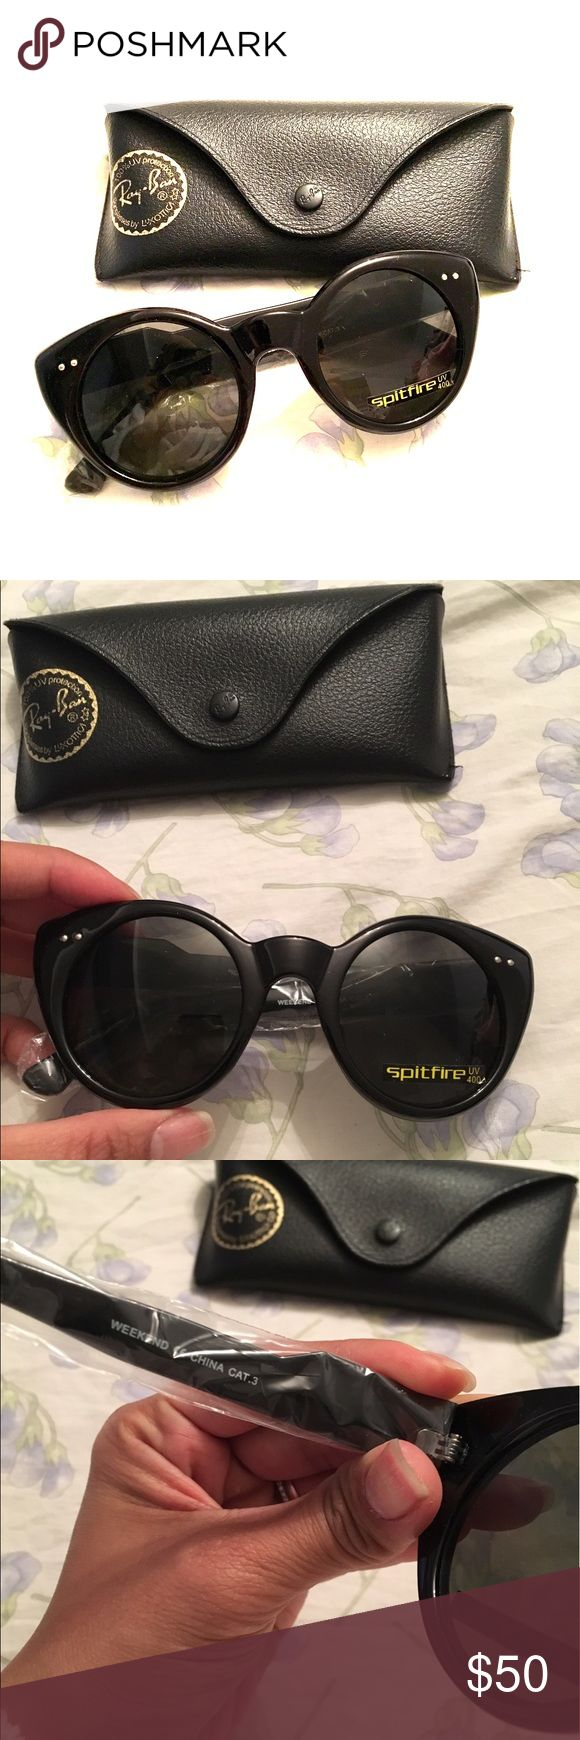 Brand new Spitfire sunglasses with RayBan Case Brand new black cat eye style sunglasses by brand Spitfire.  Seen in Nordstrom, Asos and Urban Outfitters. Style is called Weekend.  Lenses are round. Last pic of a stock photo is another Spitfire style that looks similar to these. Will come with RayBan case. Sunglasses are Spitfire brand, not RayBan. Ray-Ban Accessories Sunglasses